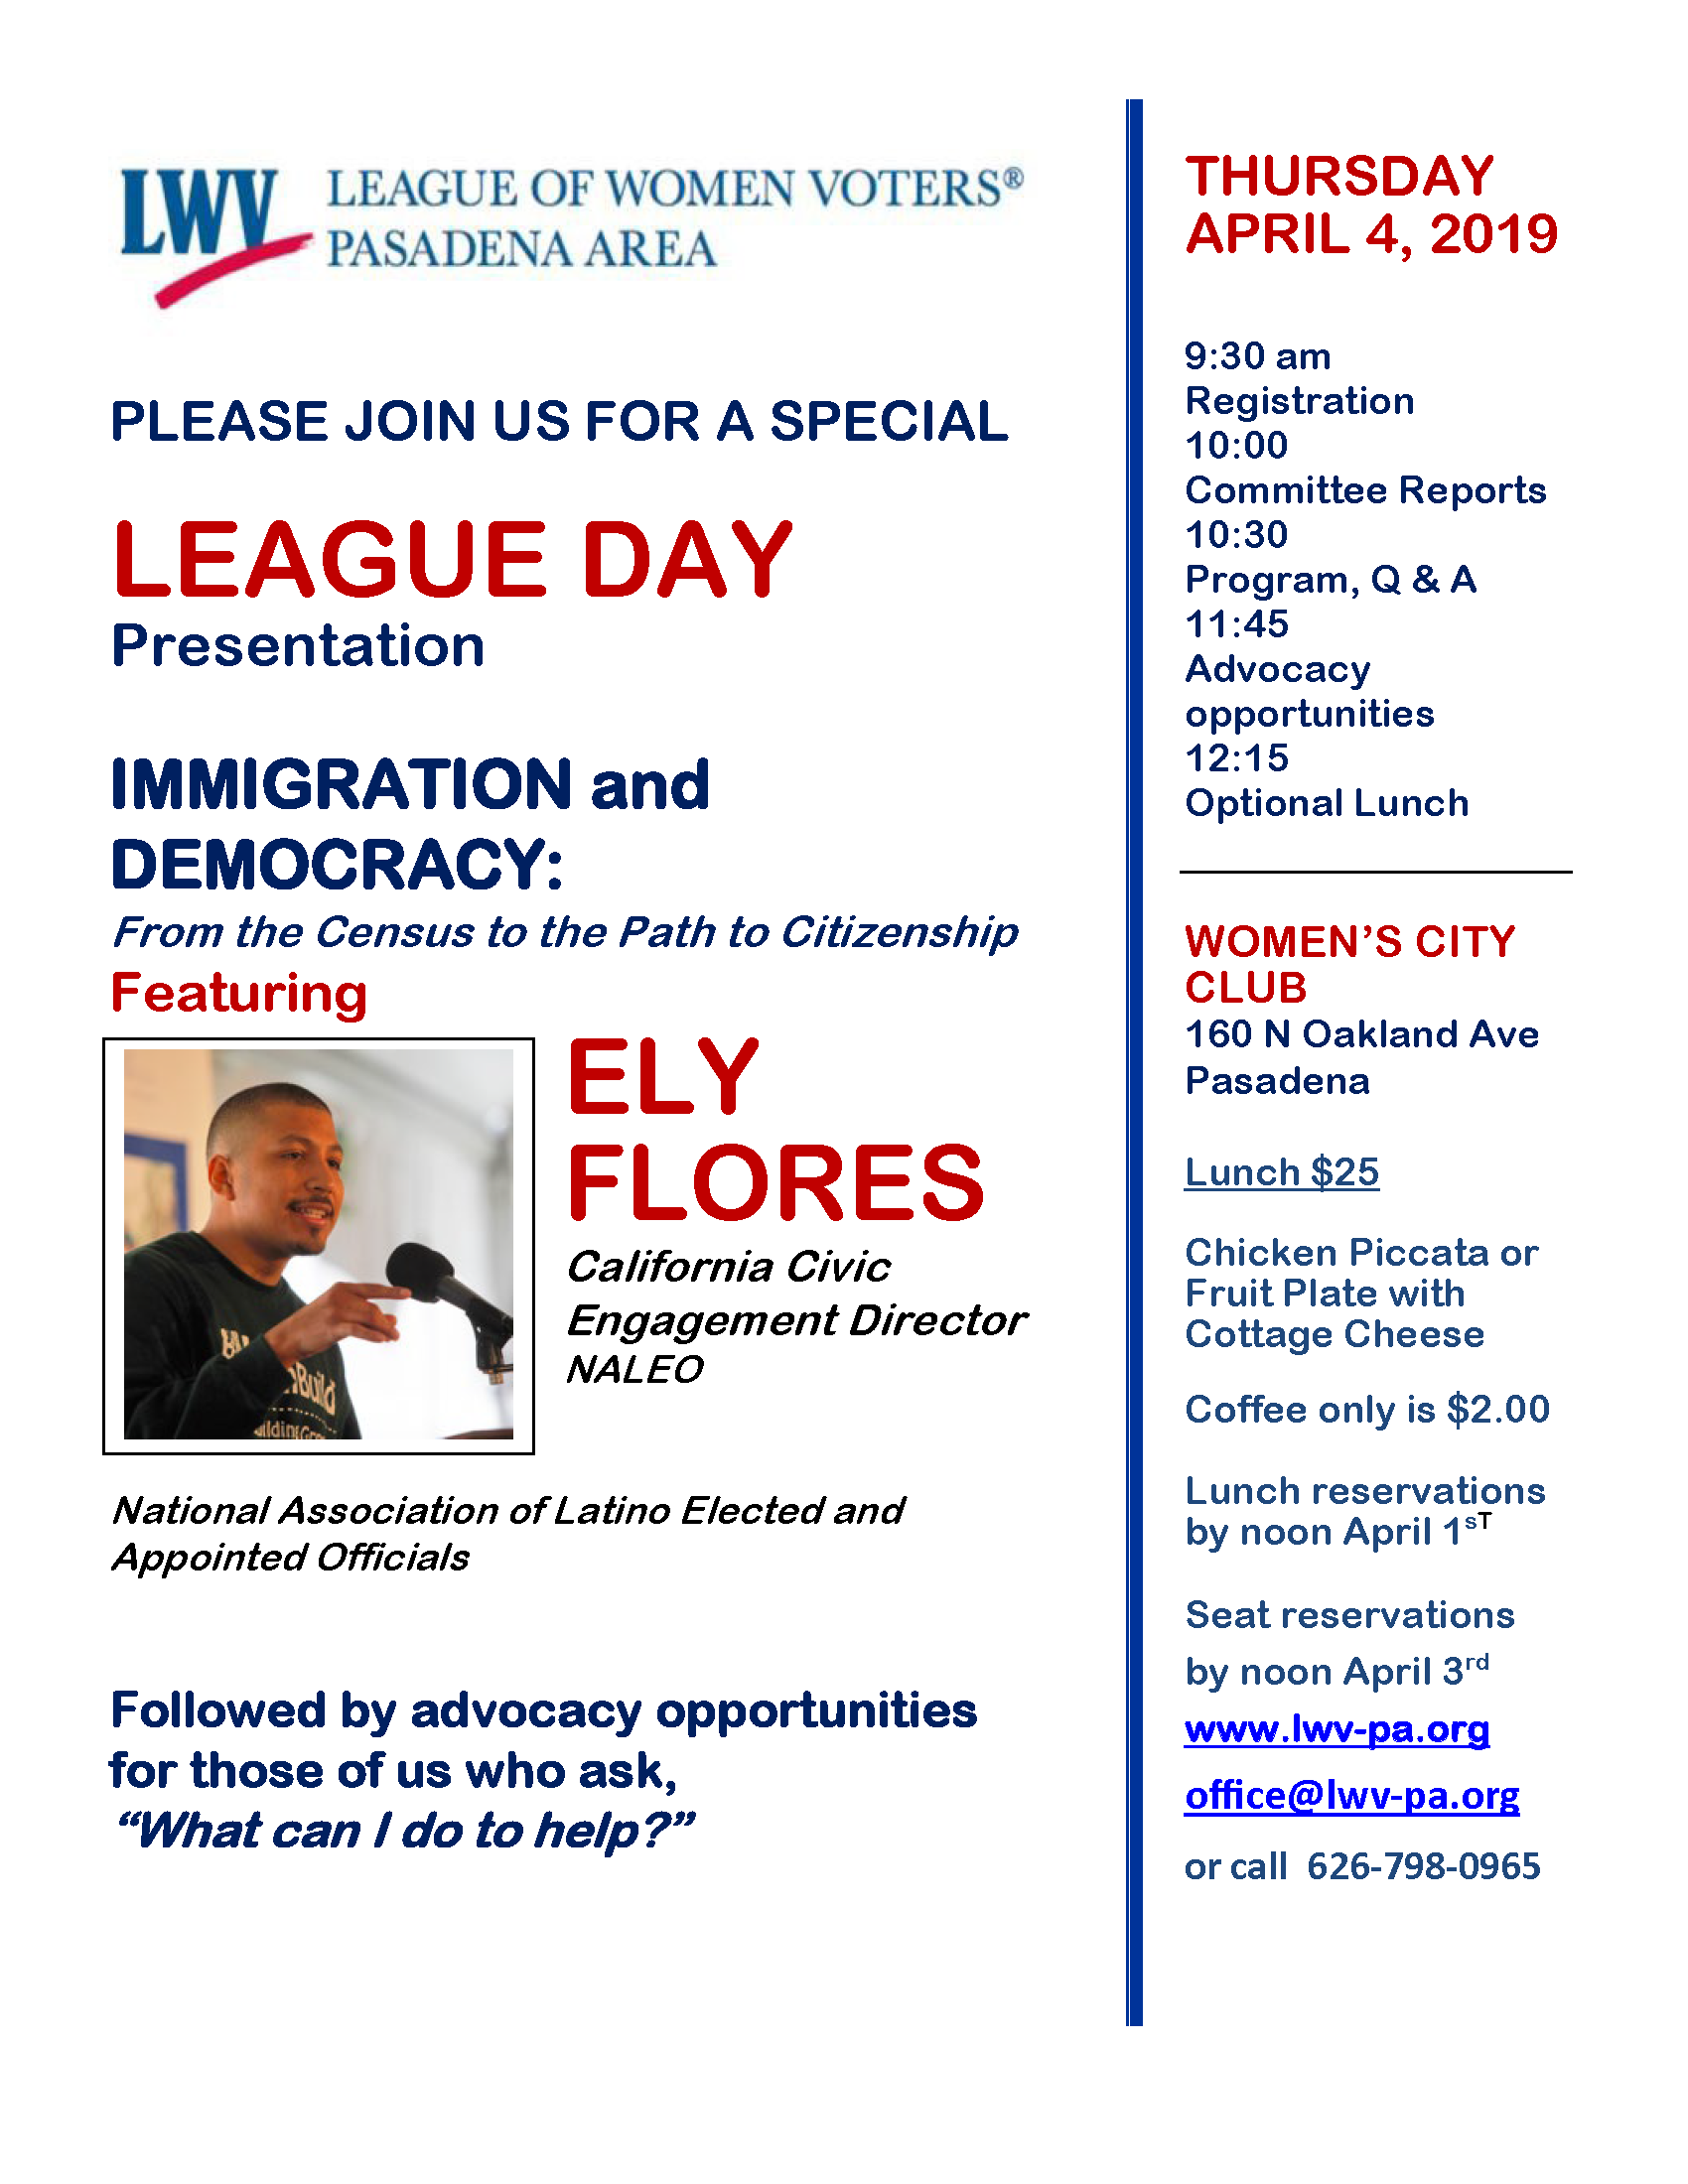 League Day Immigration and Democracy Flyer 040419